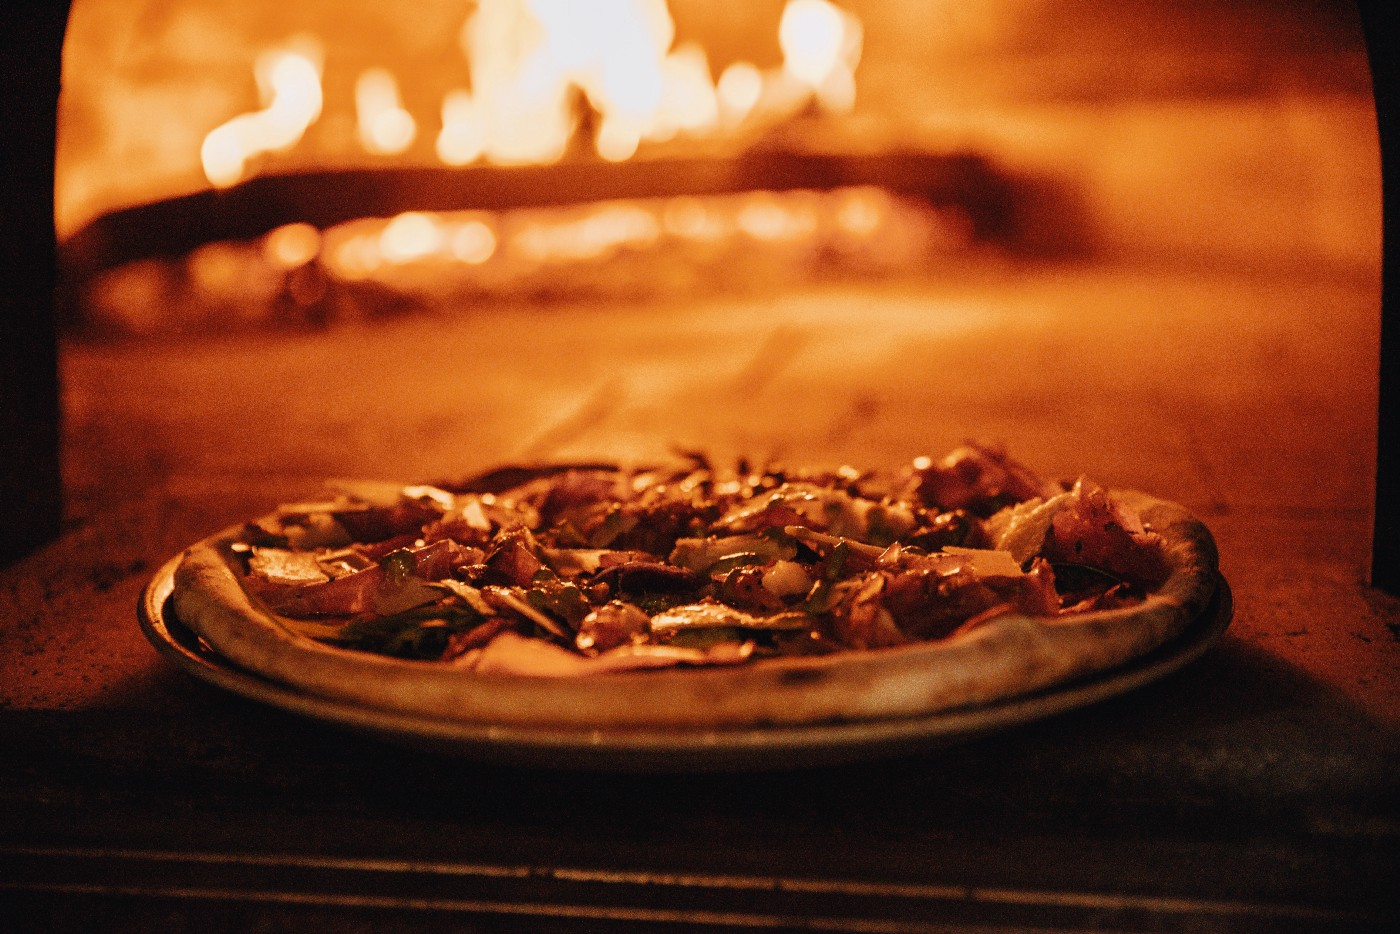 Pizza being cast into the proverbial flames of the human body.